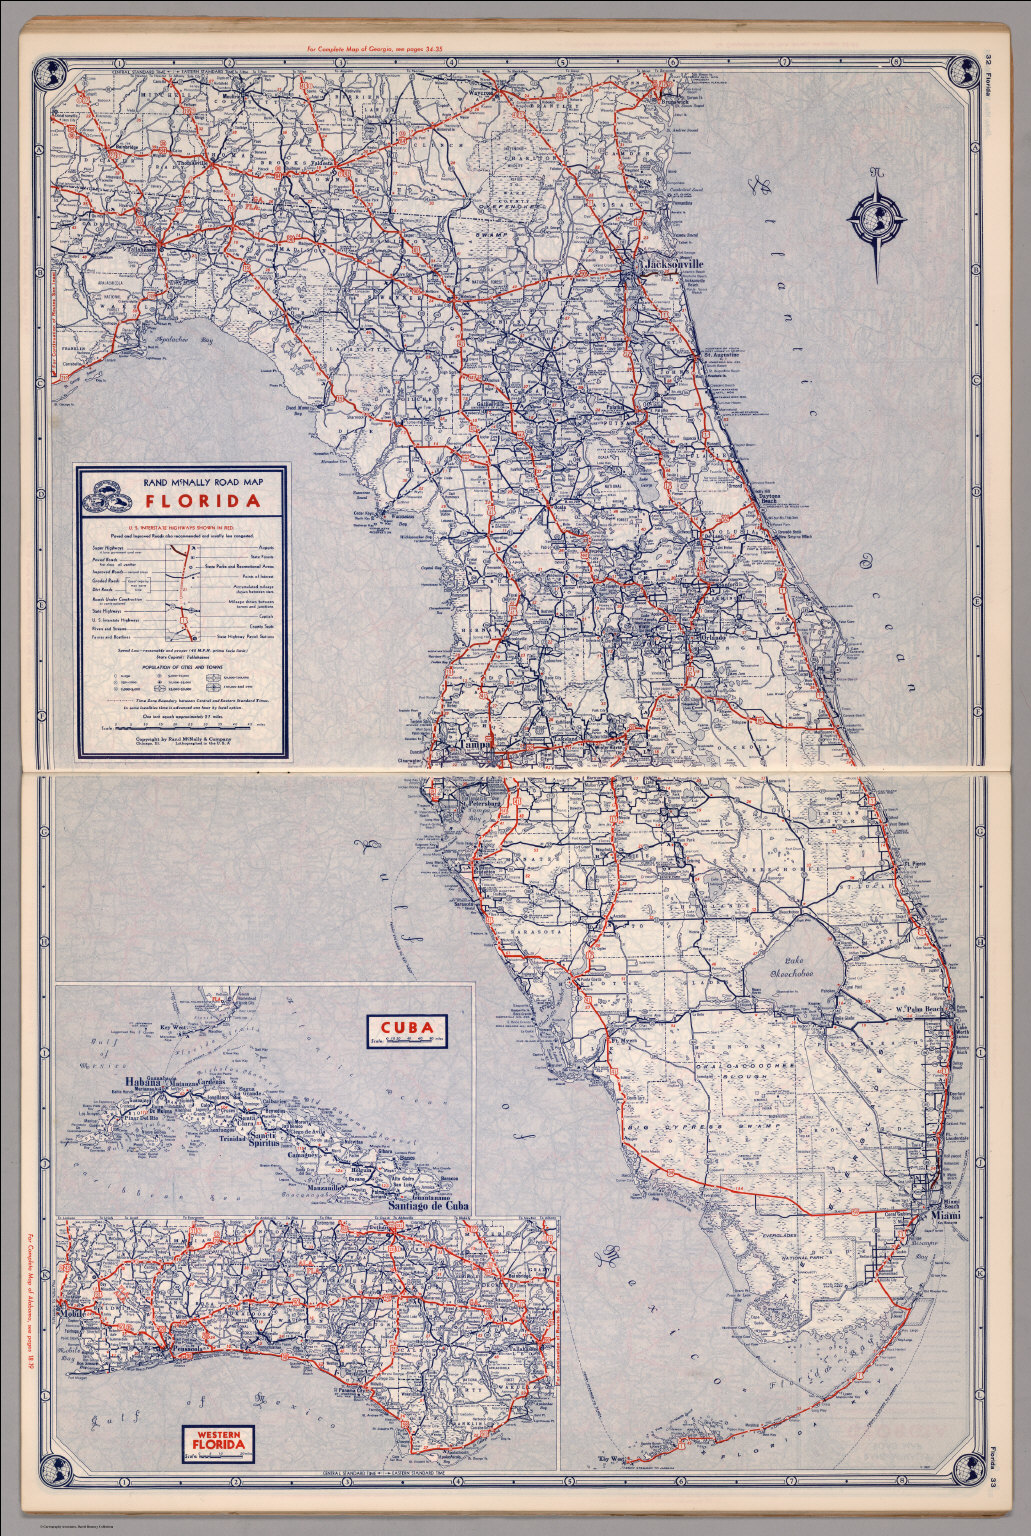 Road map of Florida - David Rumsey Historical Map Collection